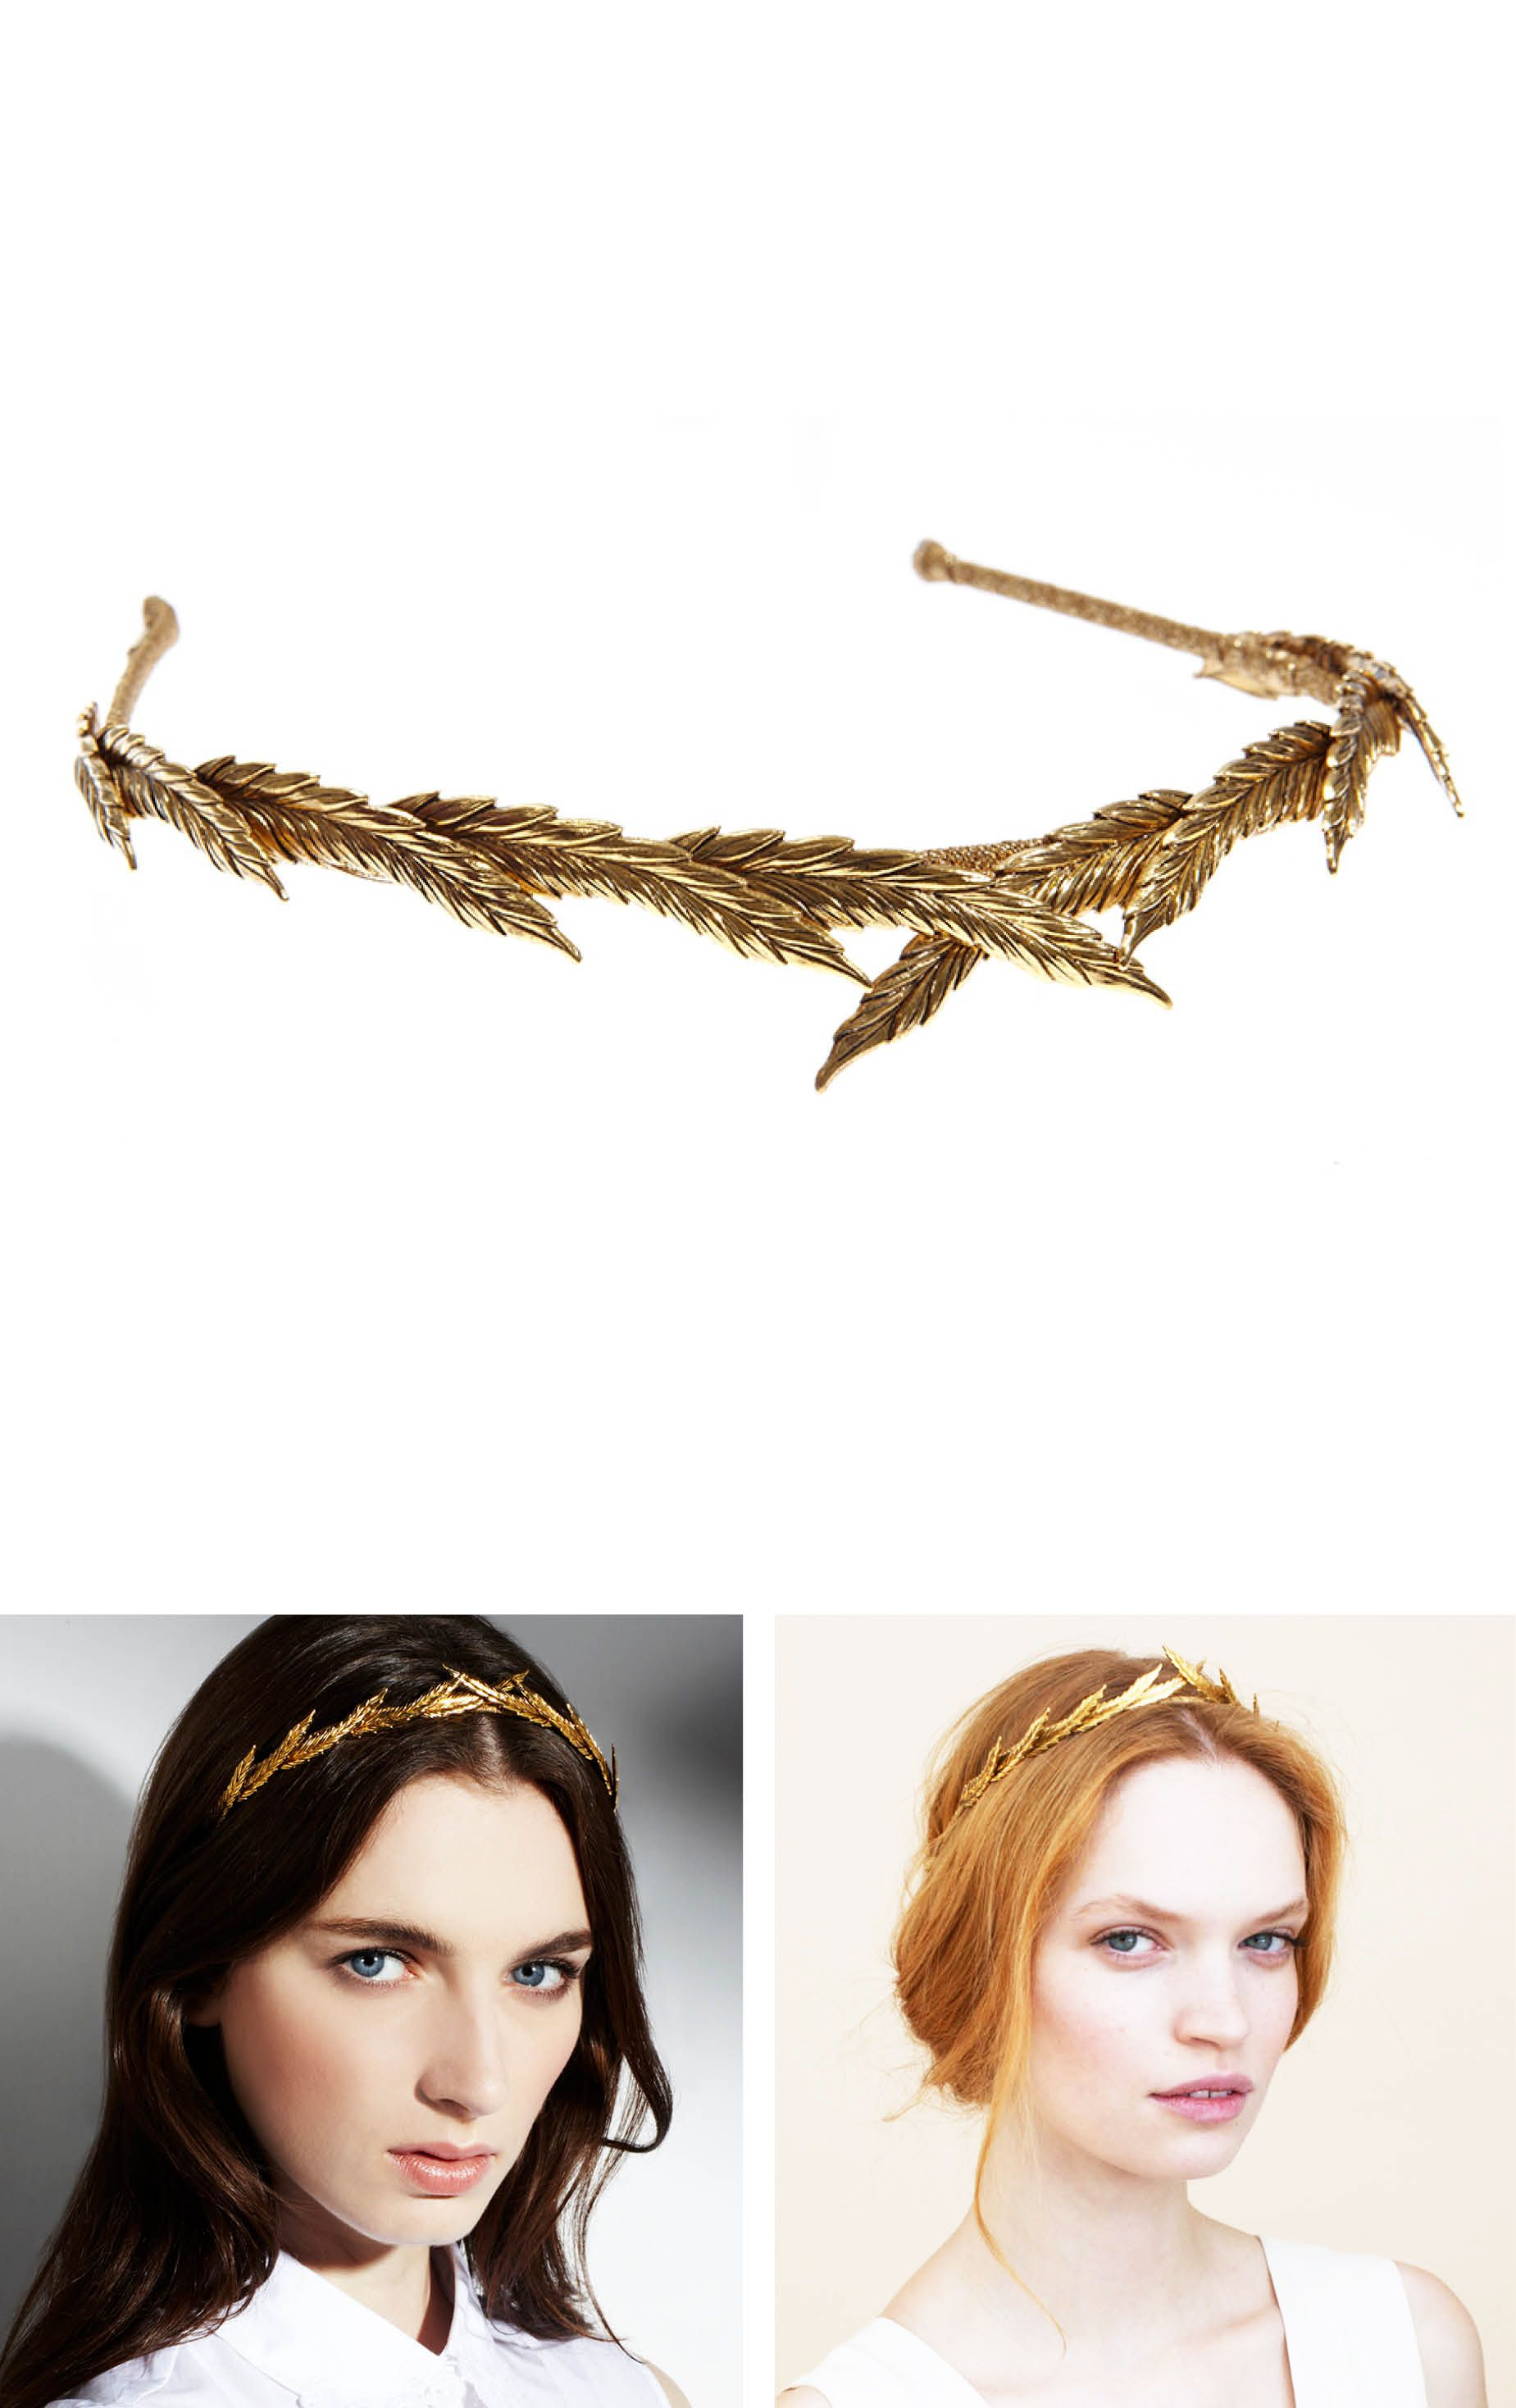 The Eris Headband by Jennifer Behr can be worn with hair up or down ...